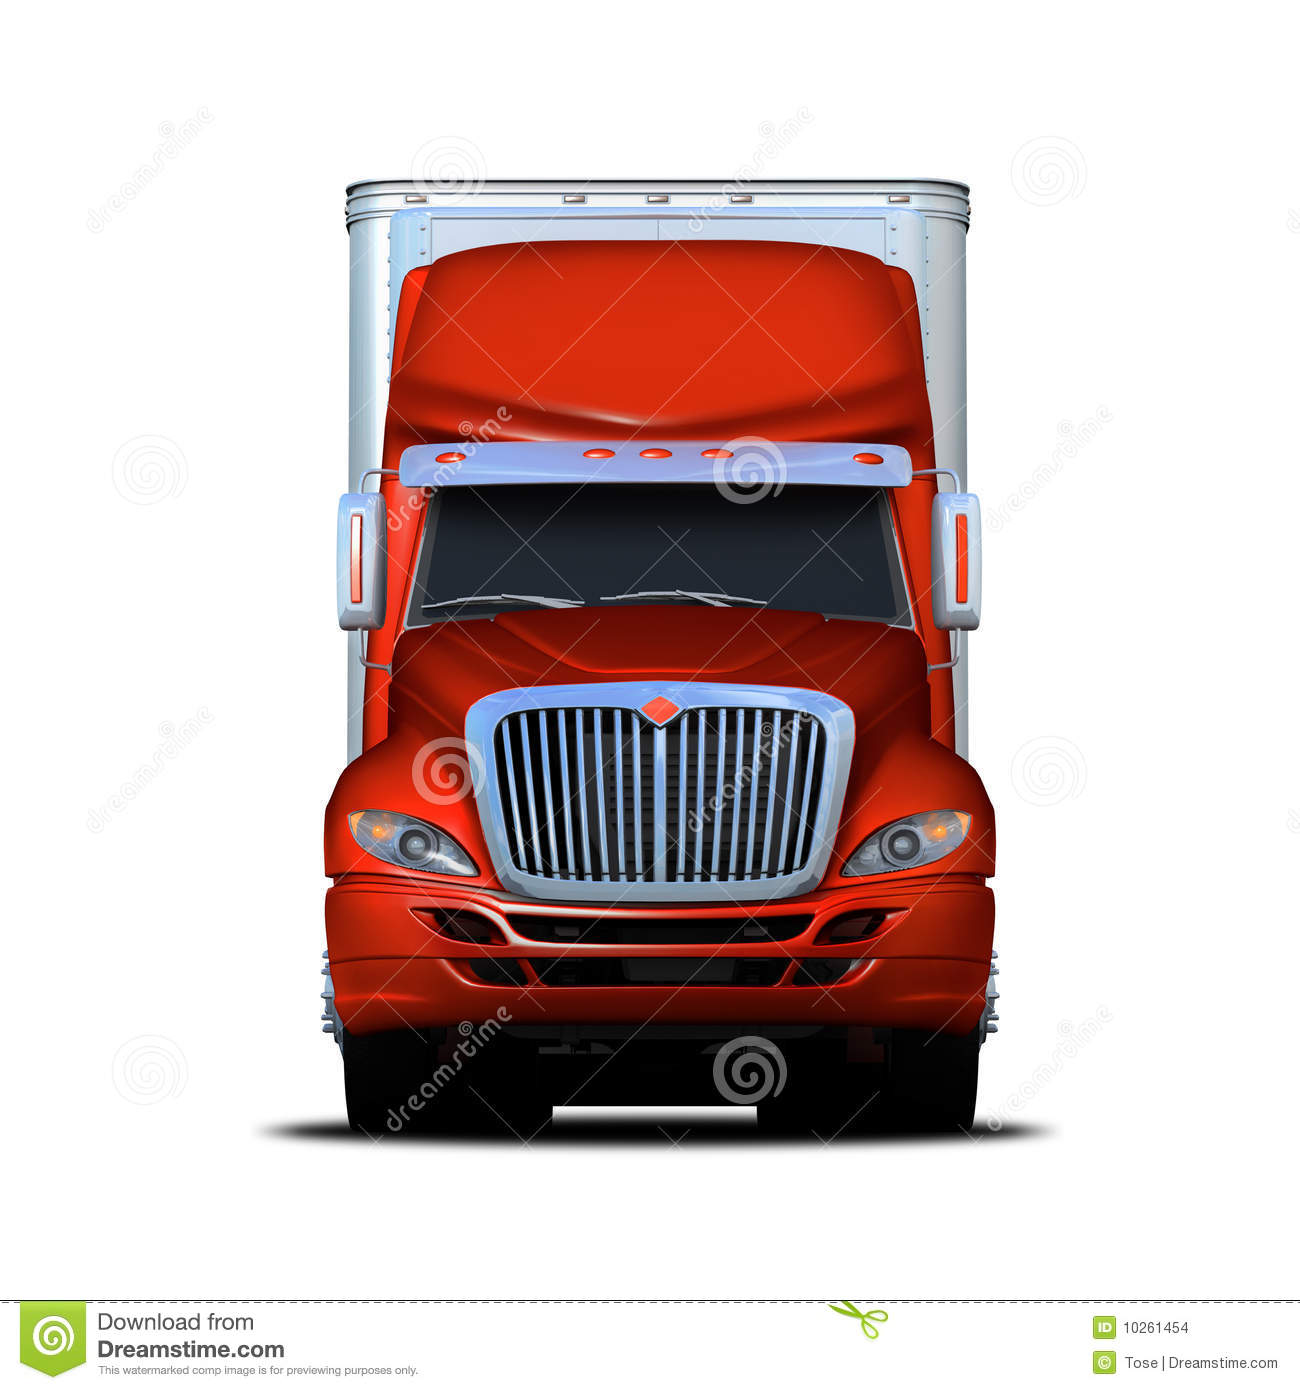 Front View Rendering Of Red And White Semi-truck Stock ...